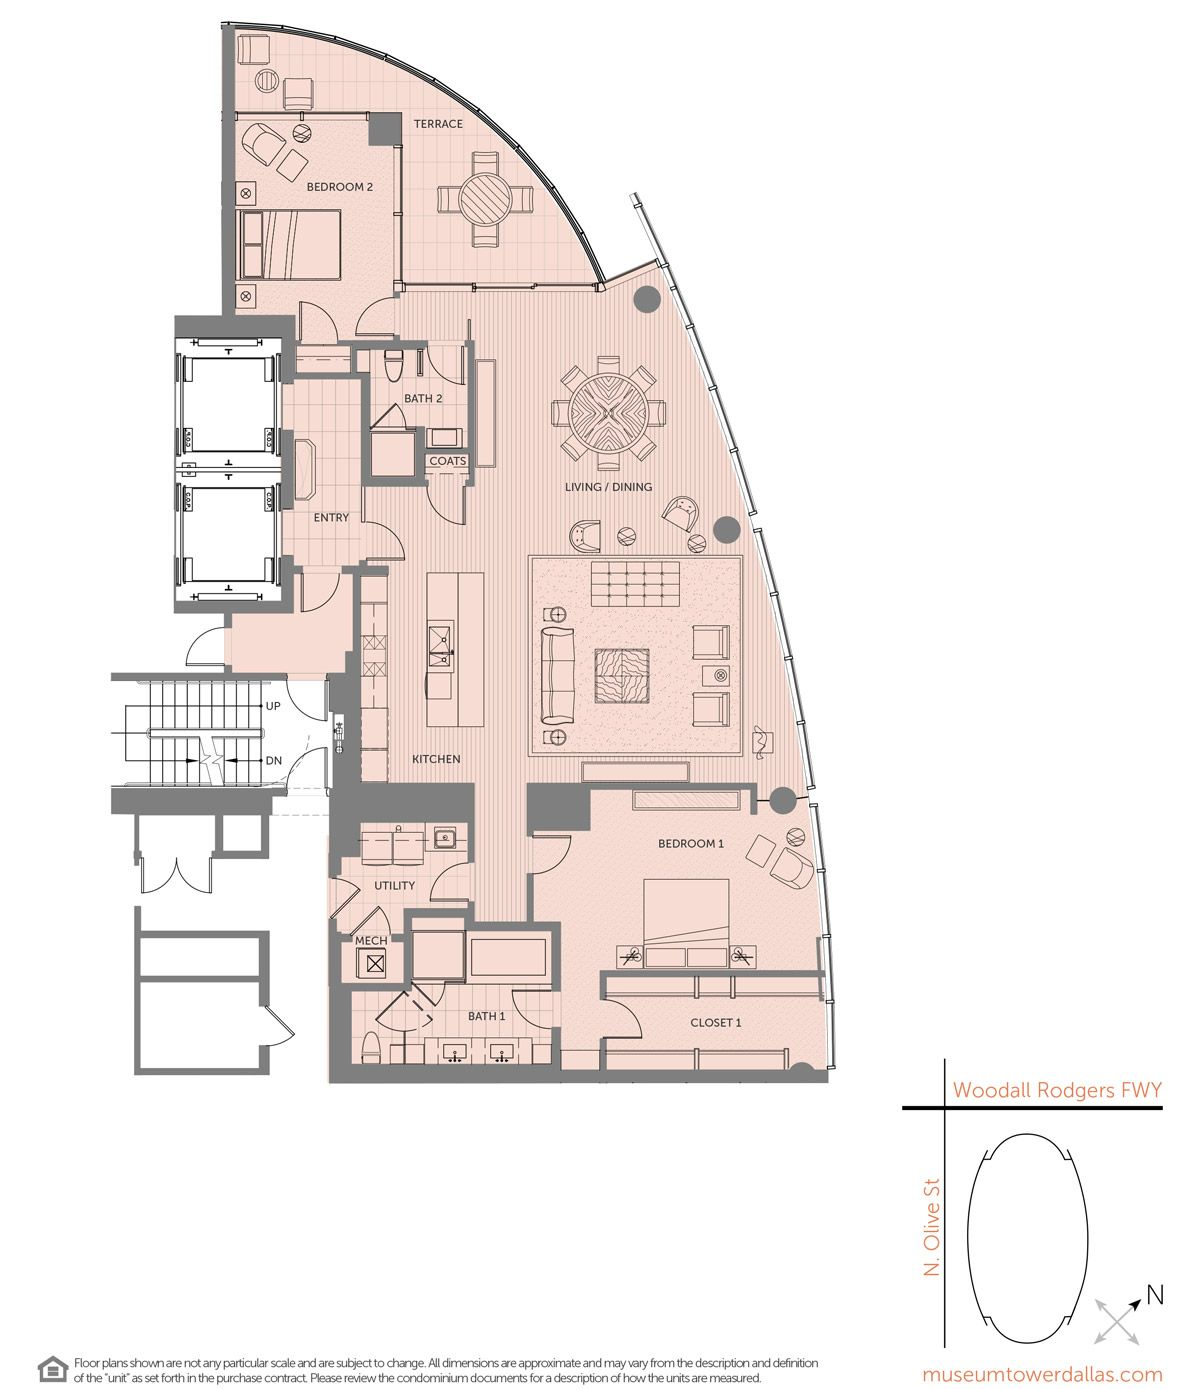 Museum Tower Offers A Variety Of Unique Downtown Dallas Condominium Floorplans Ranging From 1 800 Sq Ft To 9 300 Sq Floor Plans Condo Floor Plans How To Plan